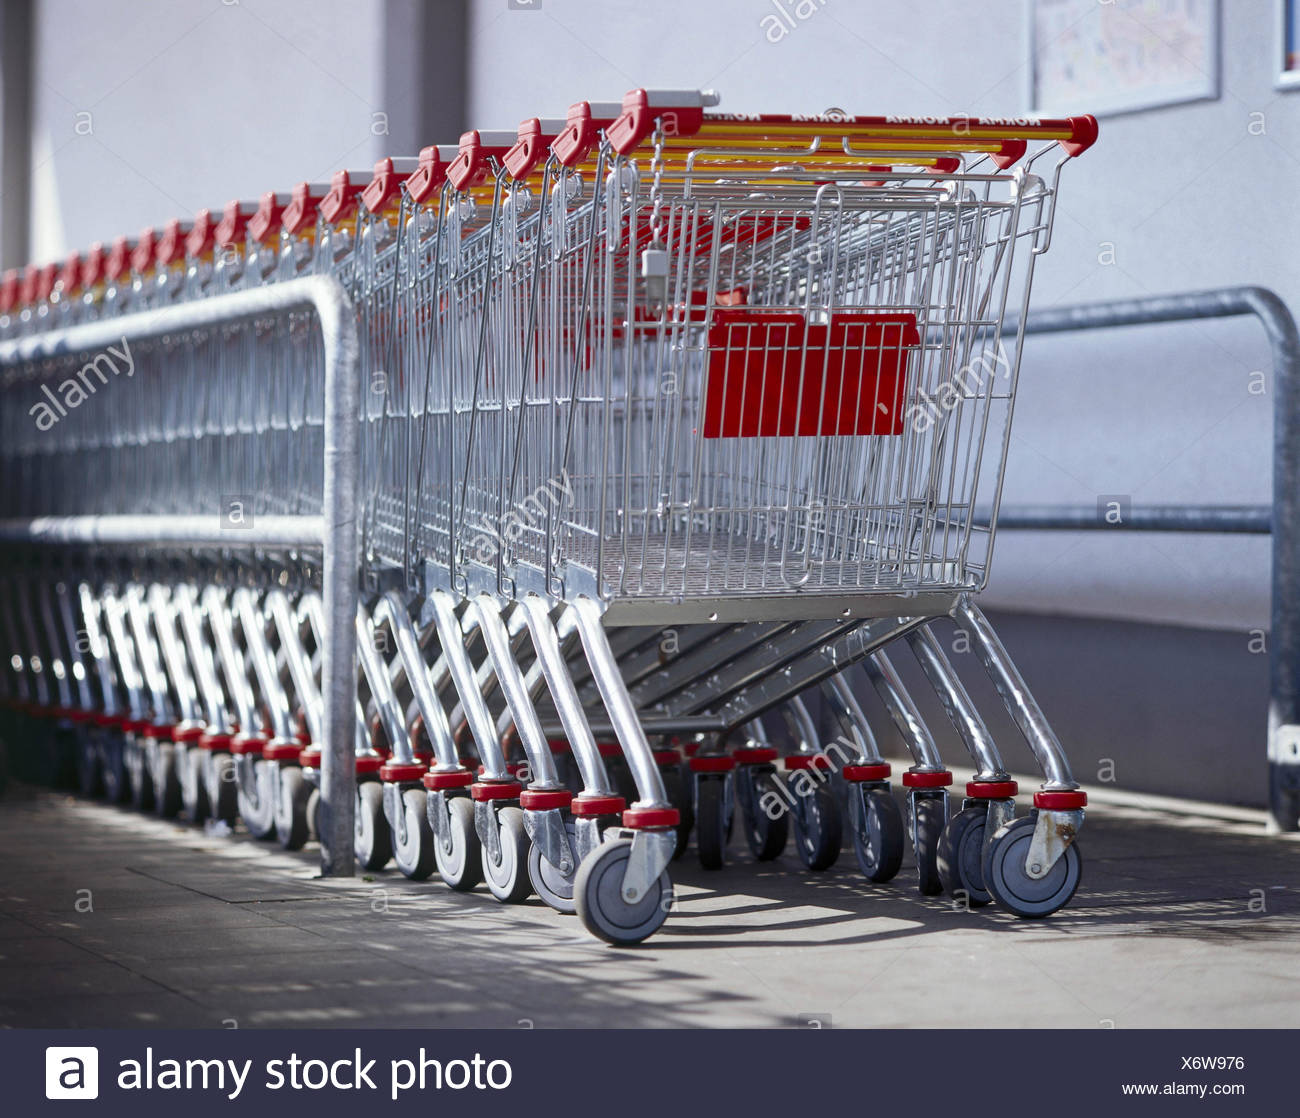 Supermarket Shopping Cart Series Detail Shopping Basket Goods Baskets Goods Carriages Shopping Baskets One After The Other Into Each Other System Conception Order Ordered Purchasing Retail Trade Outside Stock Photo Alamy